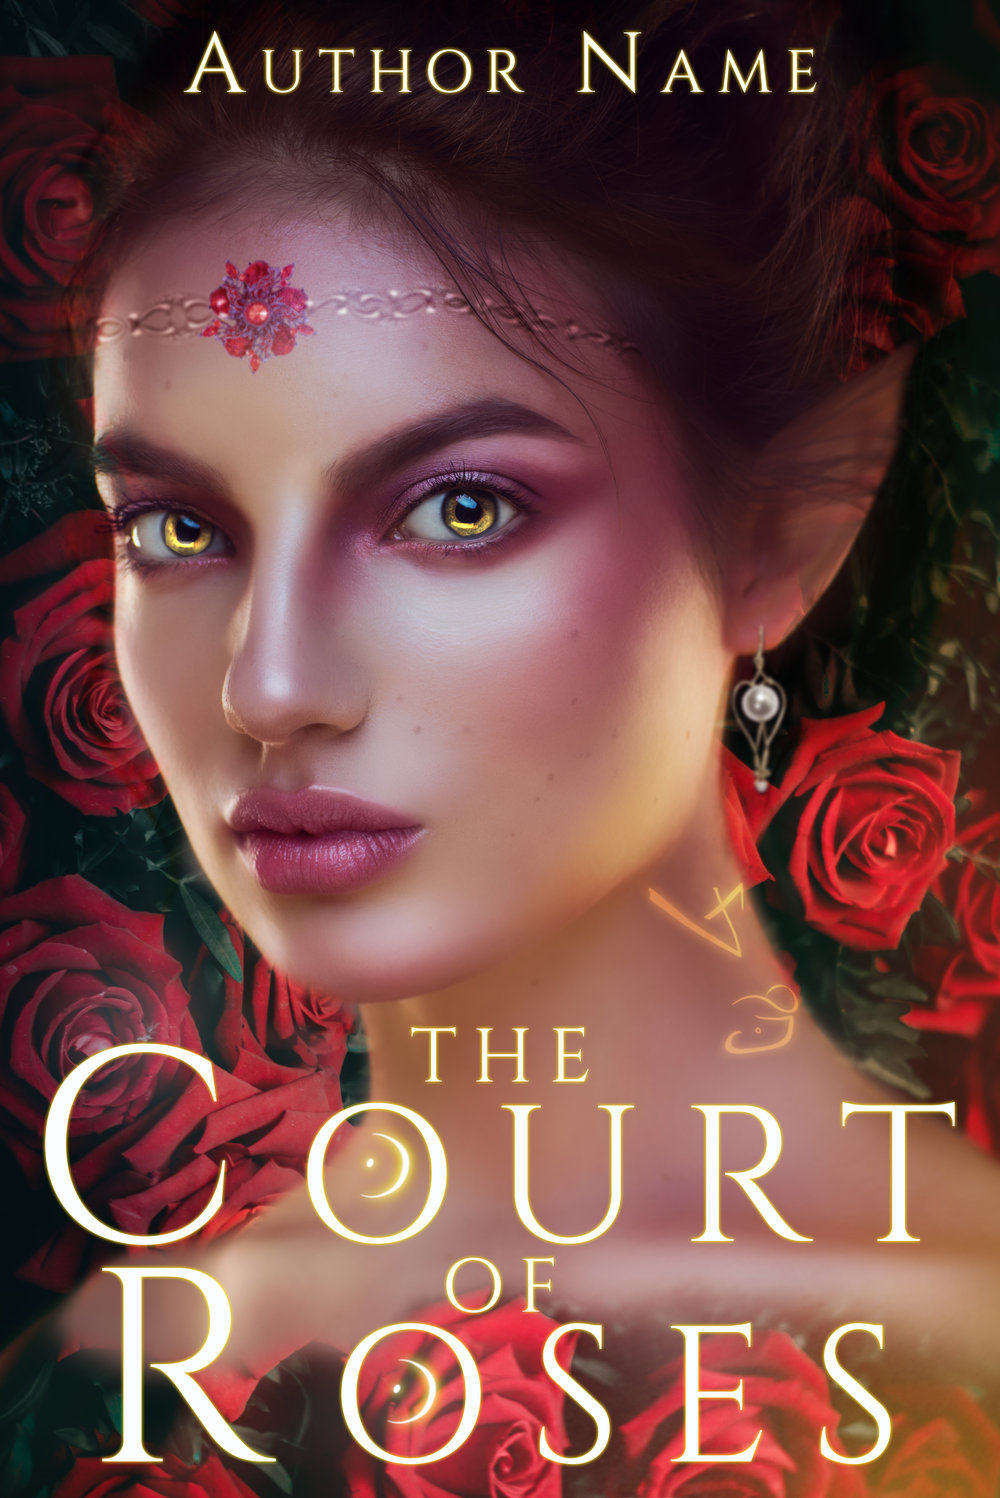 $150 - The Court of Roses